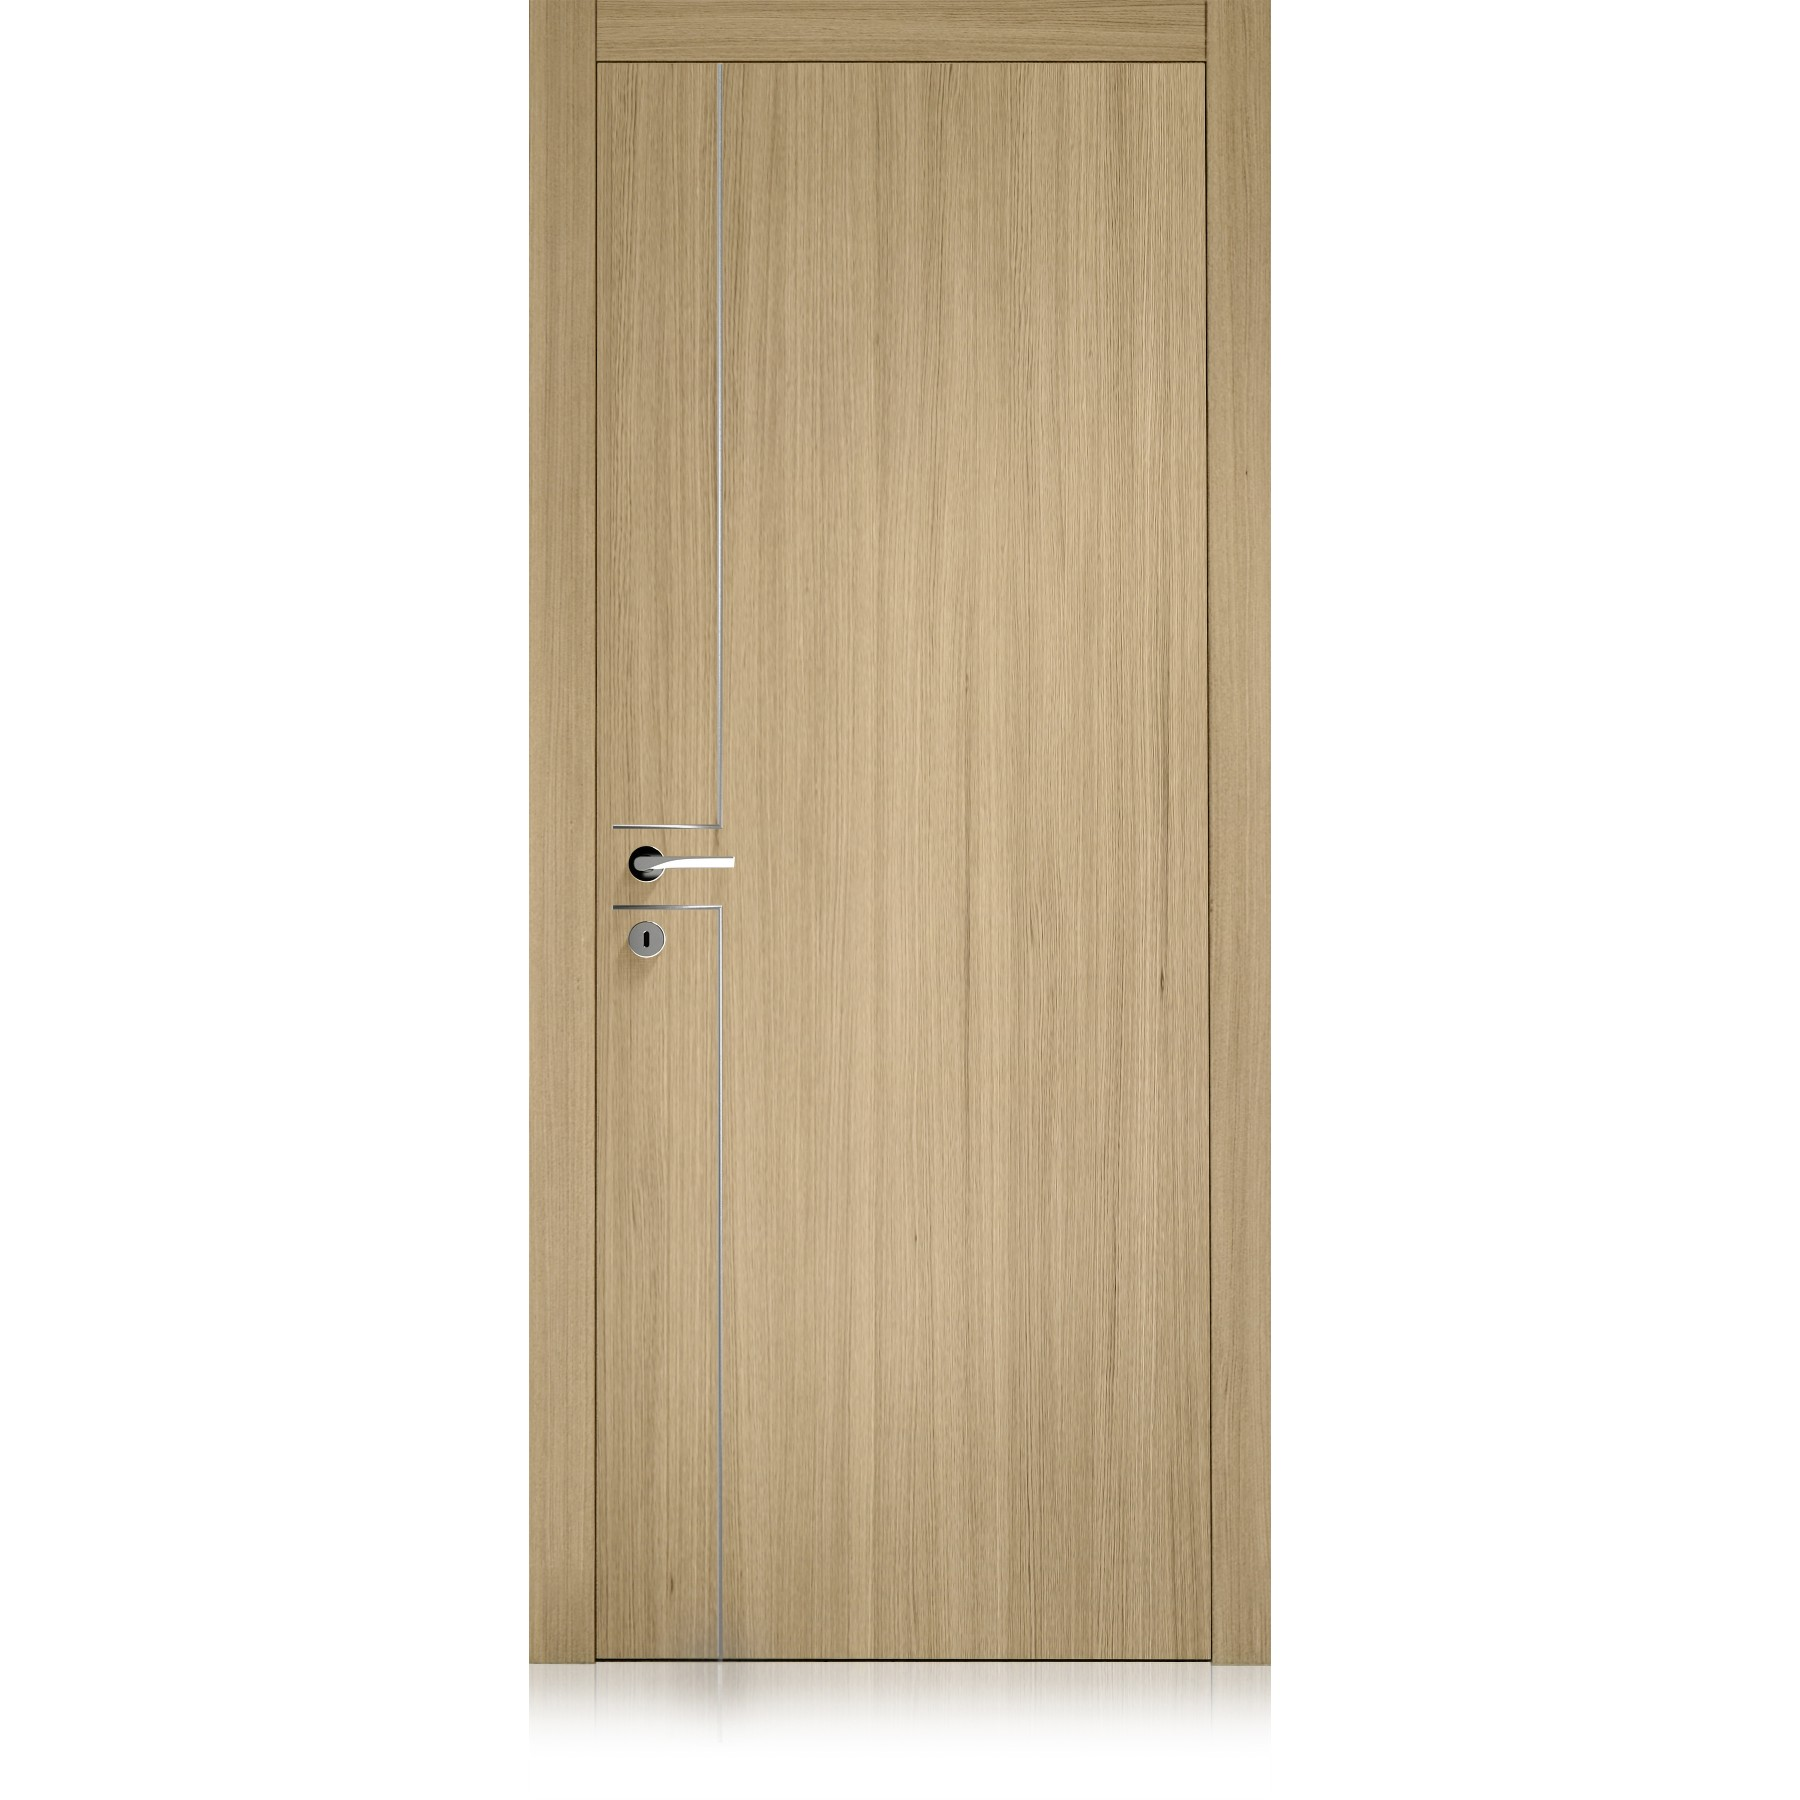 Porta Liss / 90 rovere gold